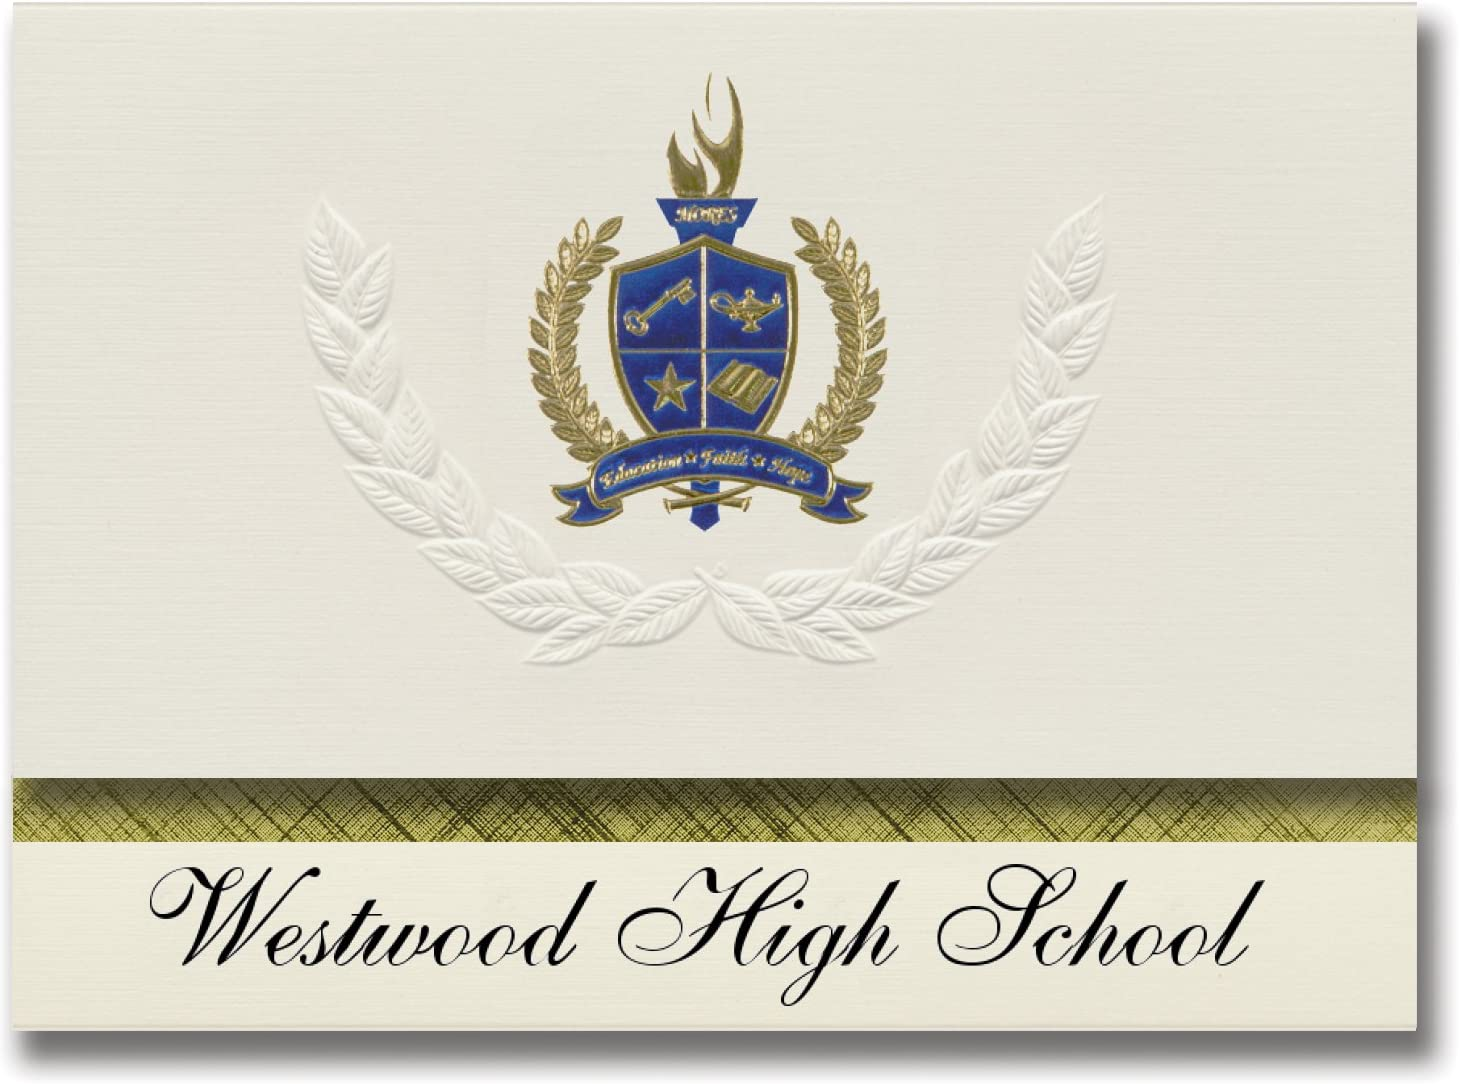 Signature Announcements Westwood High School (Gillette, WY) Graduation Announcements, Presidential style, Elite package of 25 with Gold & Blue Metallic Foil seal